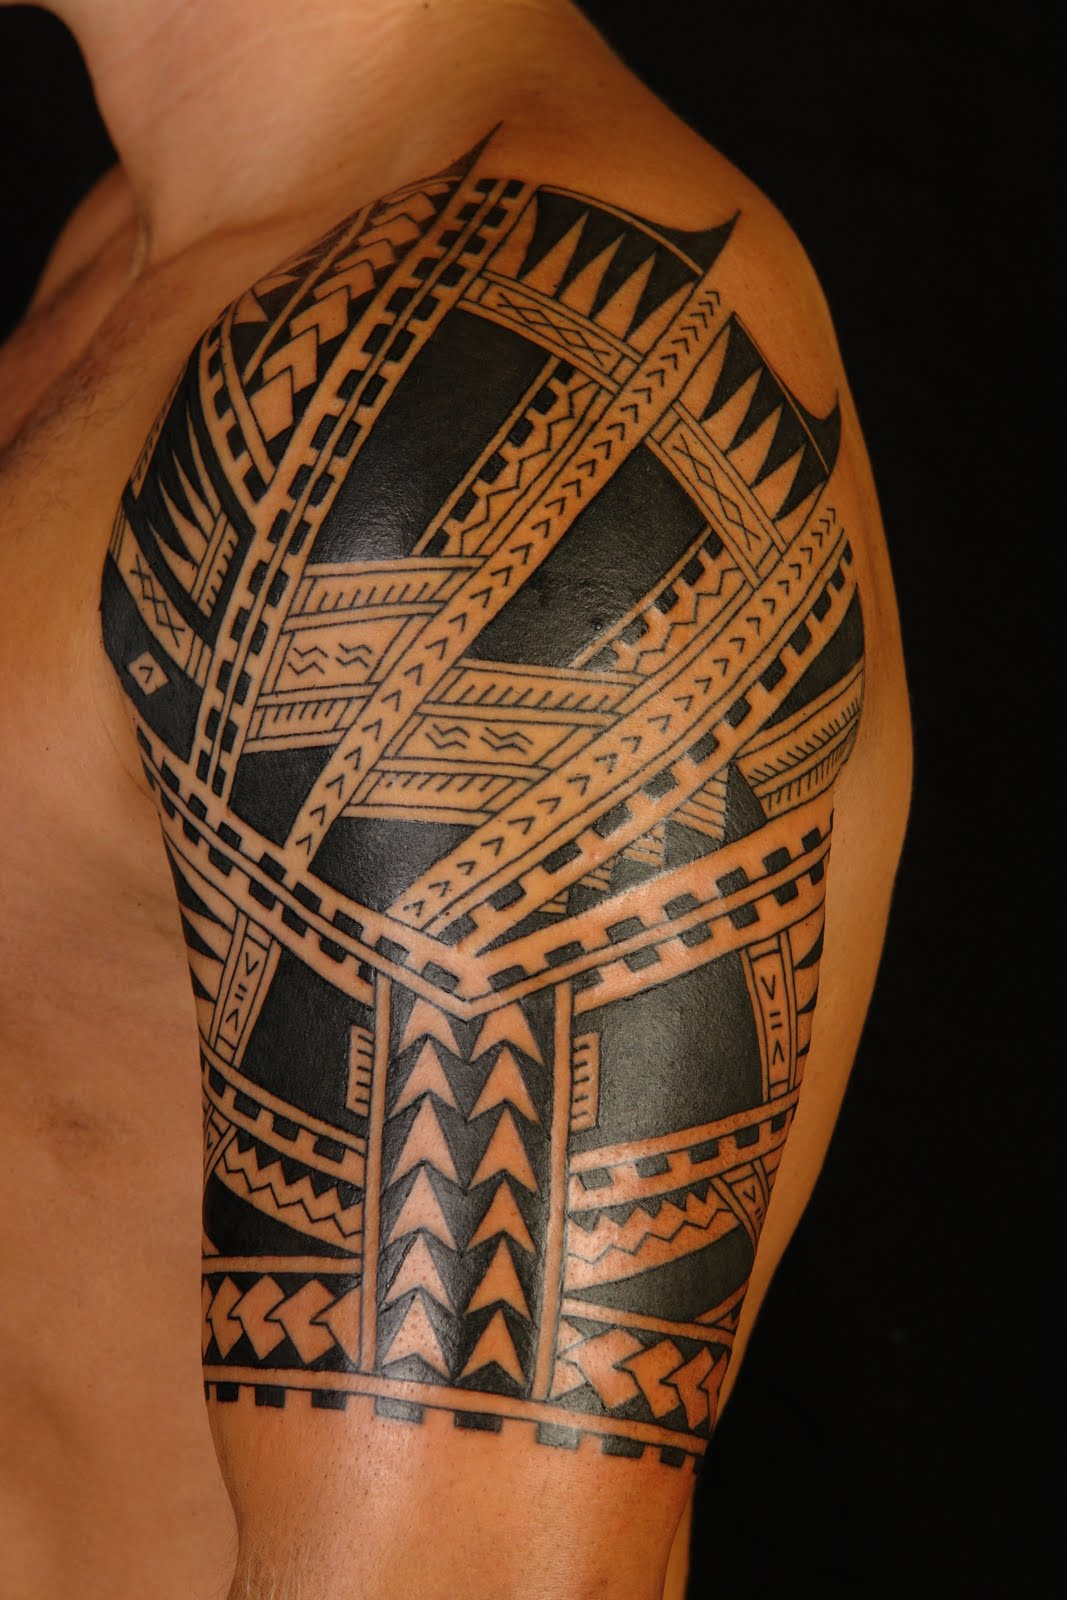 sleeves tattoo tribal samoan Polynesian  and Tattoos Designs, Tattoos  Ideas For You Meaning